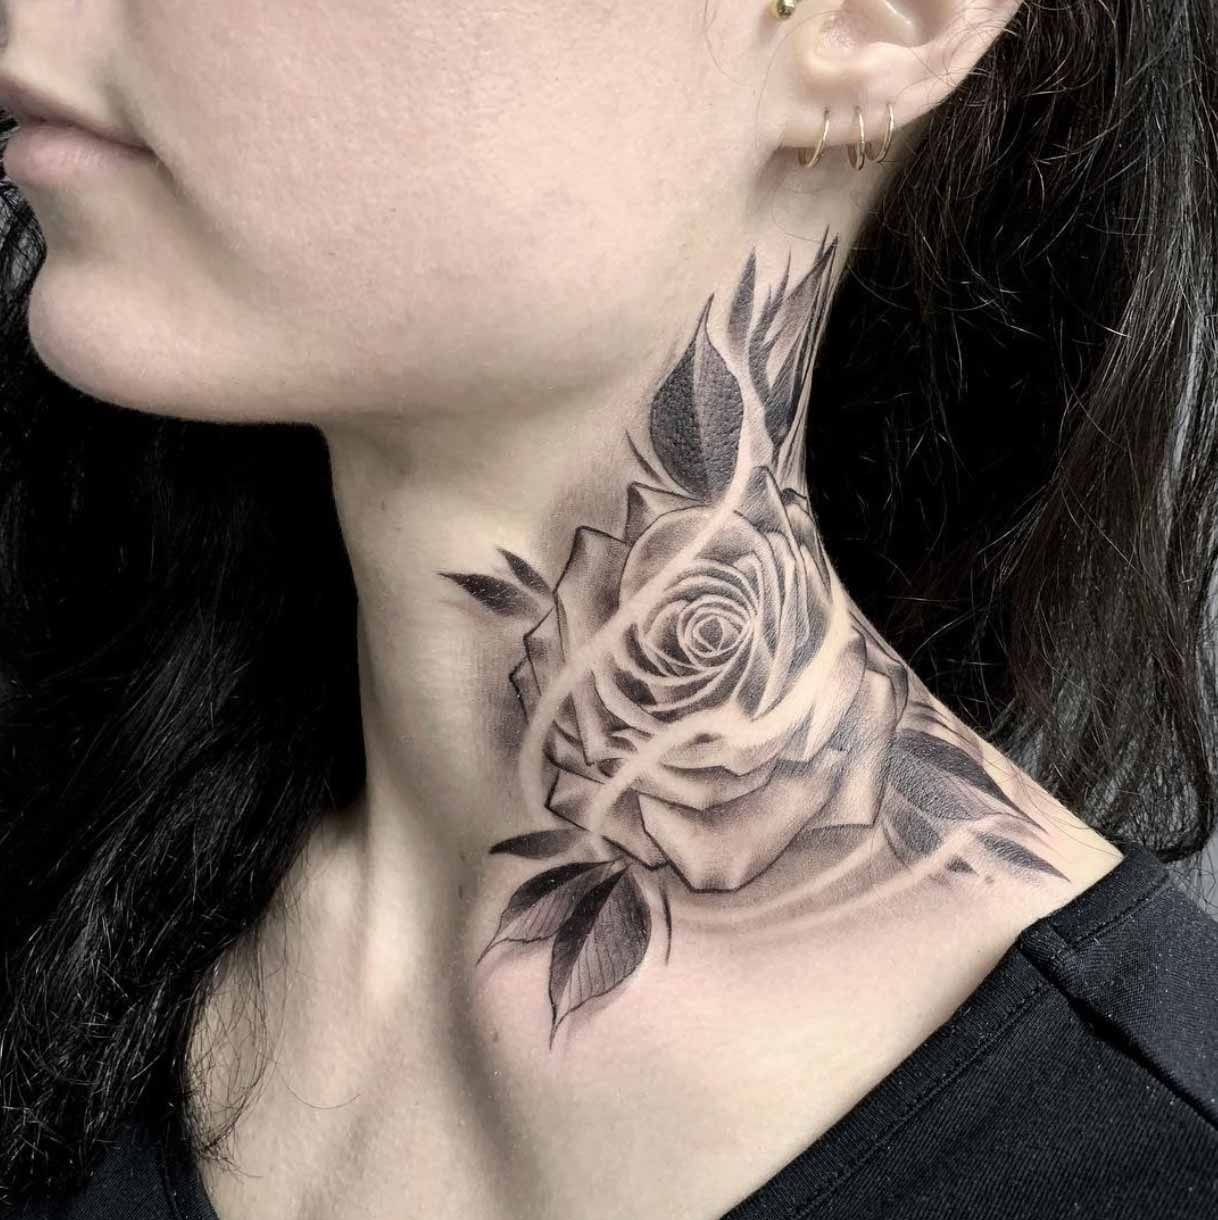 63 Creative Neck Tattoos For Women Page 1 Of 16 Neck Tattoos Women Side Neck Tattoo Front Neck Tattoo